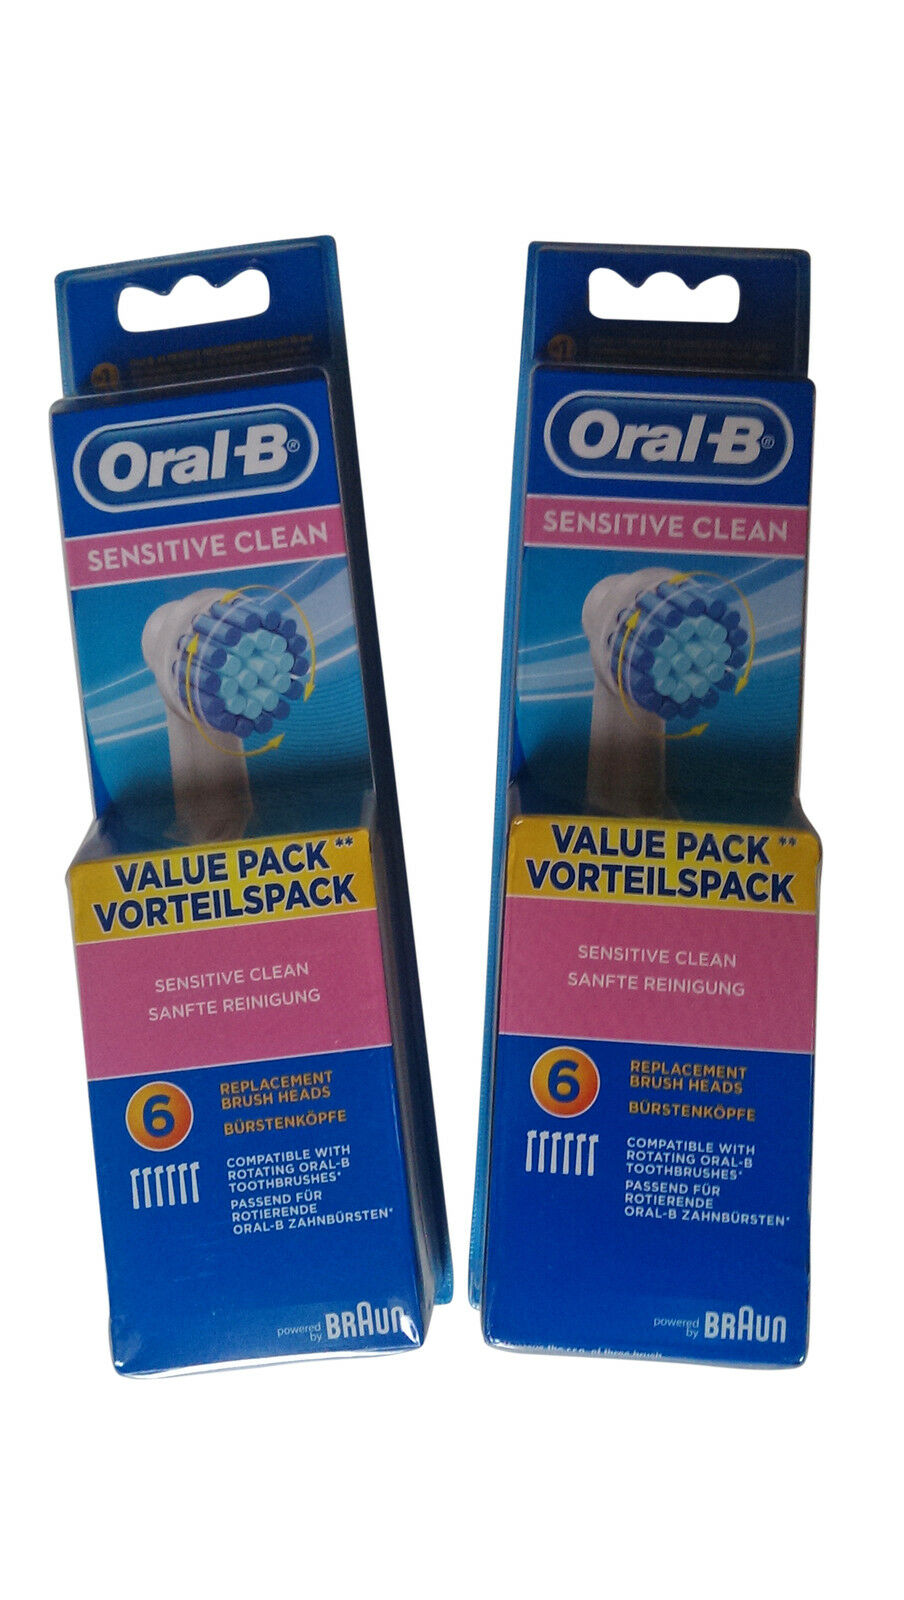 12 braun oral b sensitive clean aufsteckb rsten b rstenk pfe ersatzb rsten oralb eur 29 85. Black Bedroom Furniture Sets. Home Design Ideas